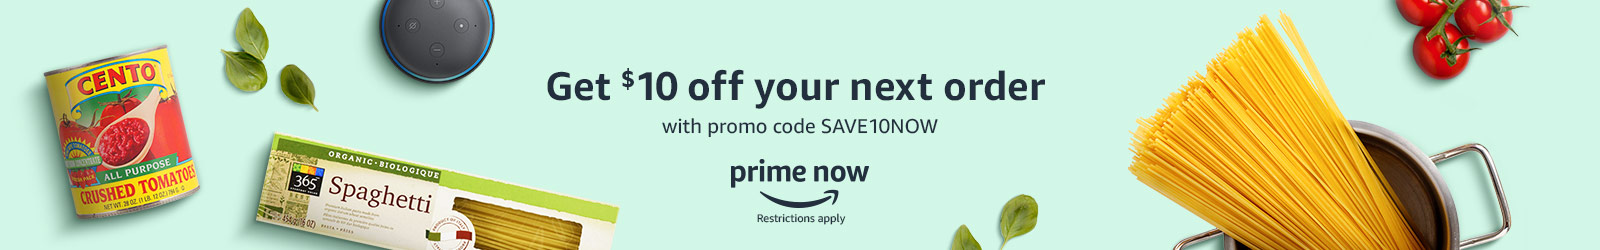 Amazon Prime Now Promotion: $10 Off $35+ With Promo Code